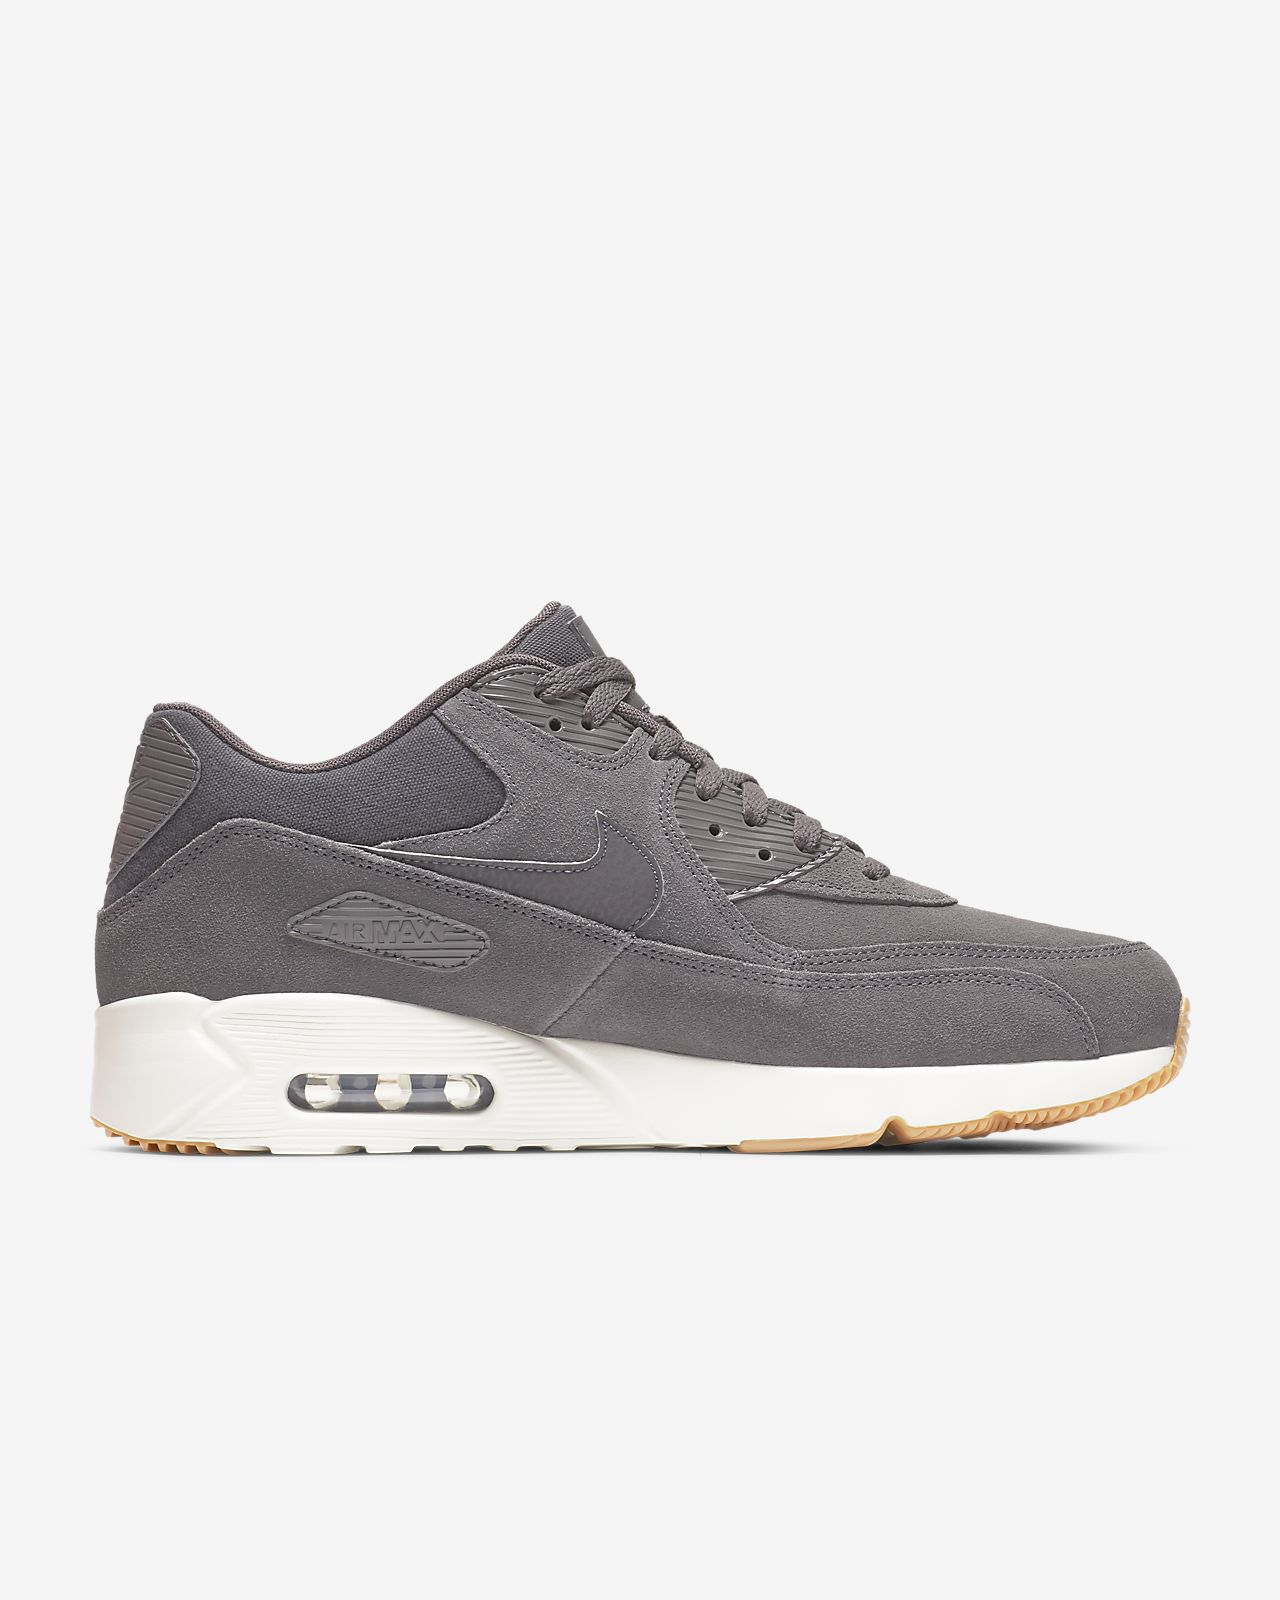 hot sale online 259ac 6d848 ... Chaussure Nike Air Max 90 Ultra 2.0 pour Homme